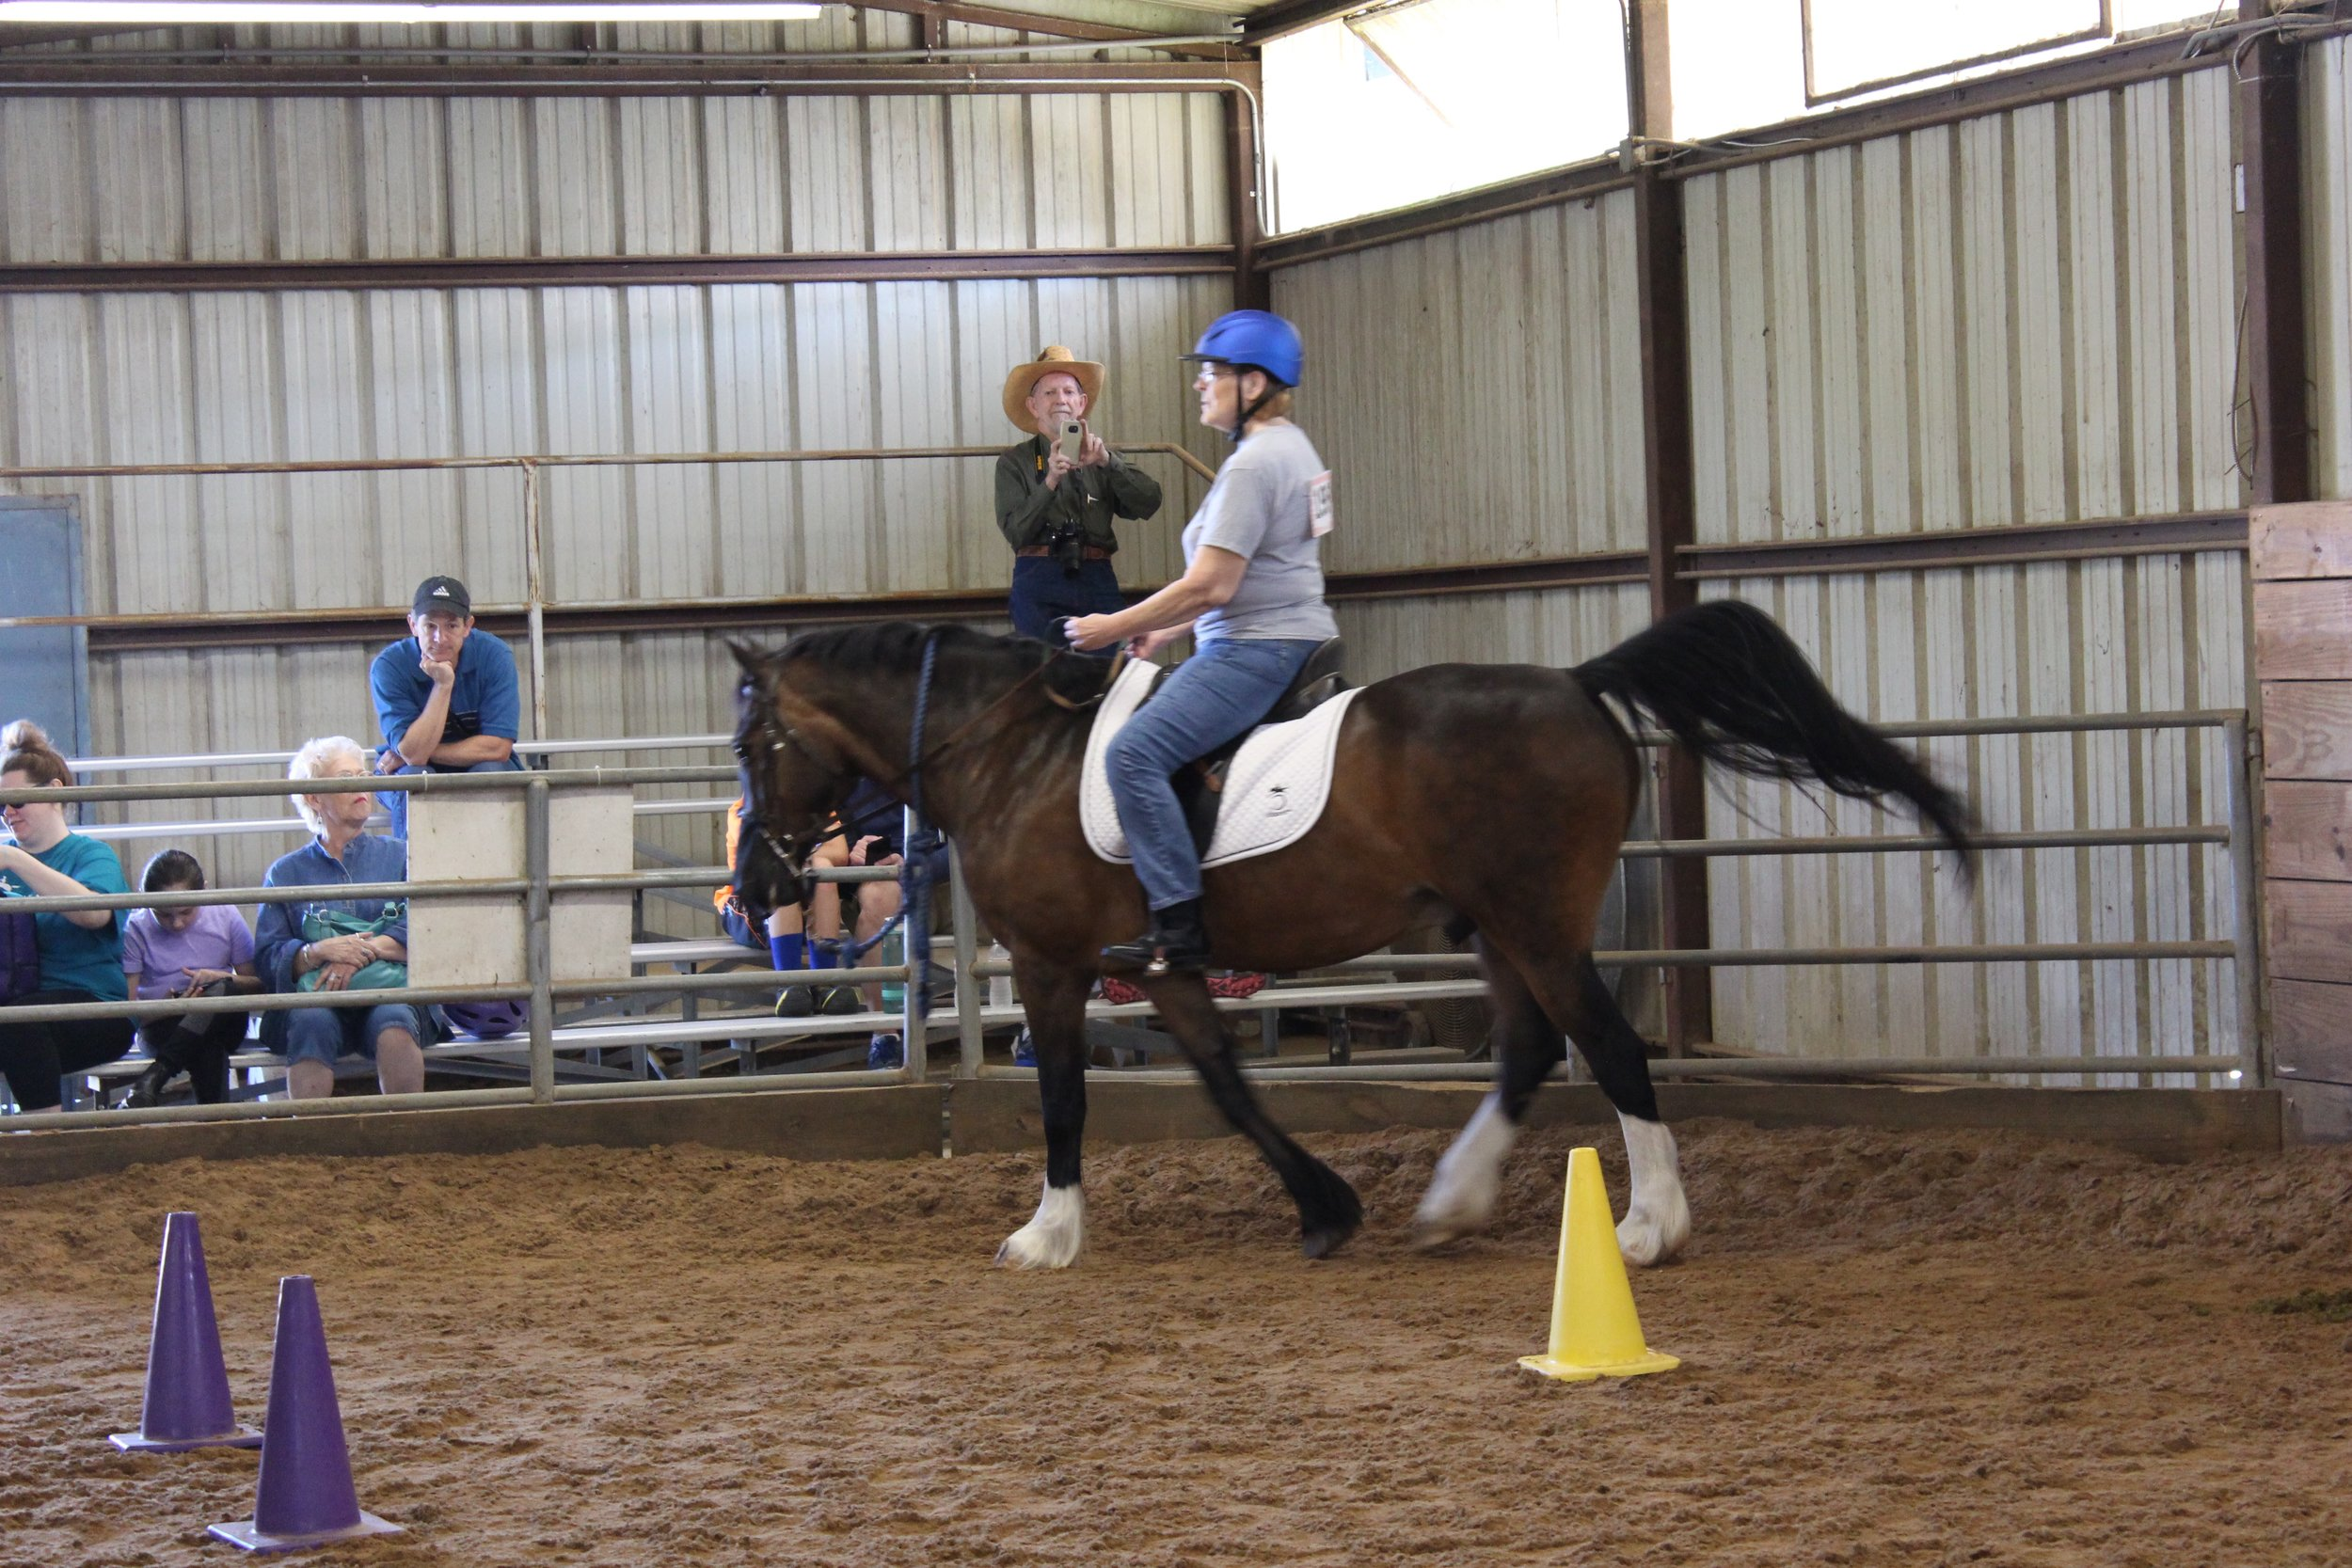 Linda's first horse show competition